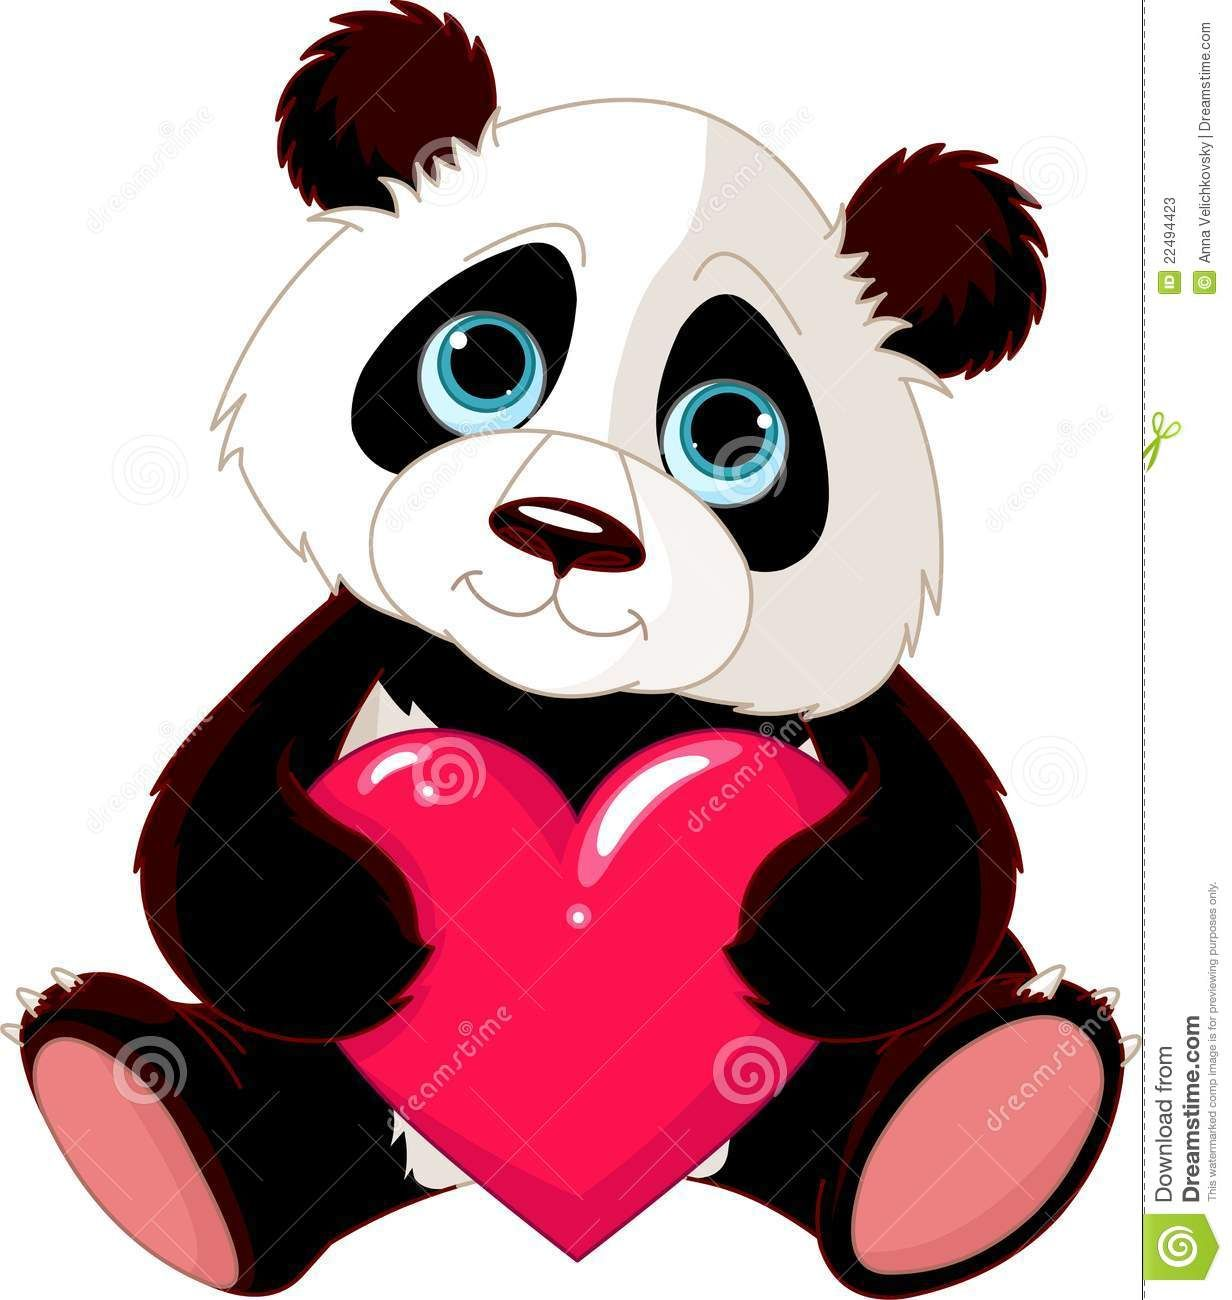 images animaux mignon avec coeur recherche google images panda cute panda et clip art. Black Bedroom Furniture Sets. Home Design Ideas